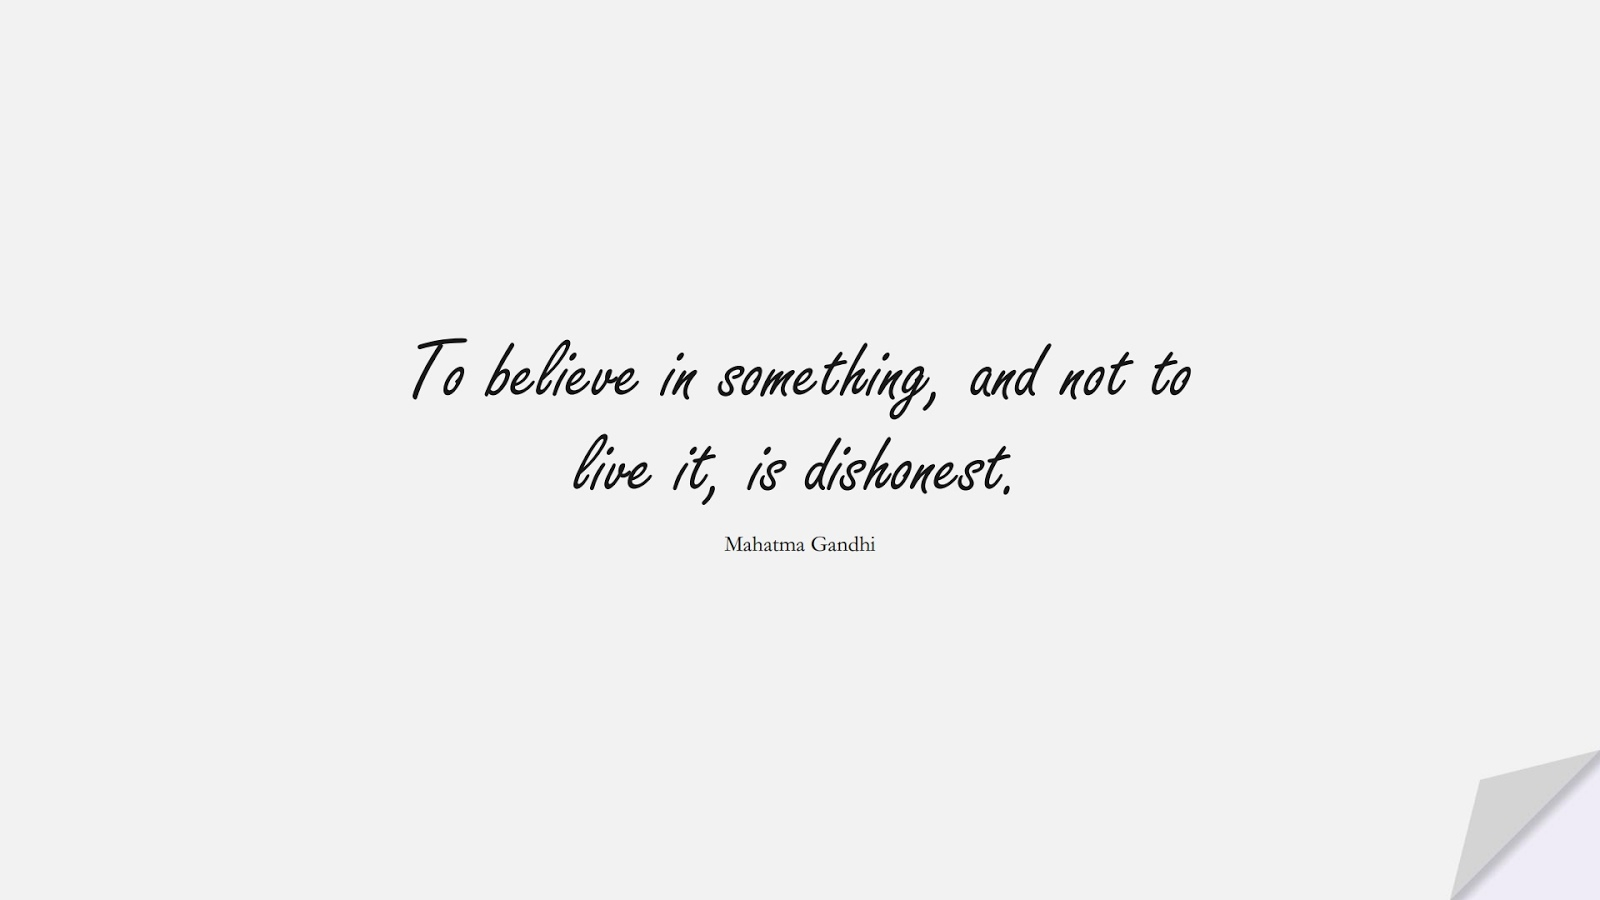 To believe in something, and not to live it, is dishonest. (Mahatma Gandhi);  #ShortQuotes